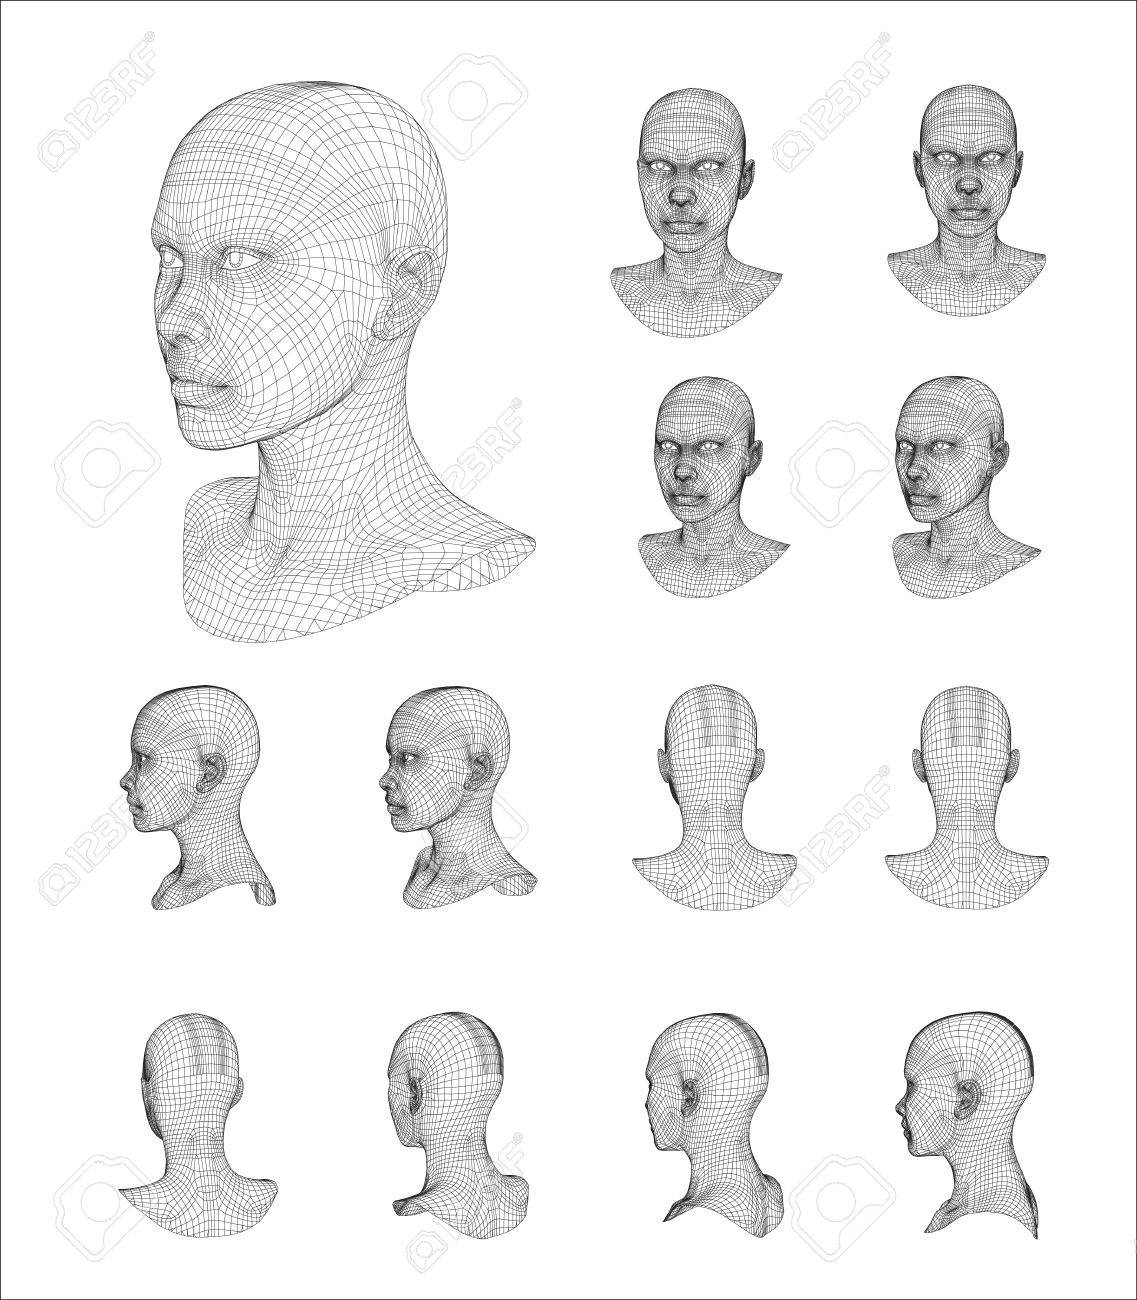 Wireframe Head 3d Model Vector Illustration Royalty Free Cliparts ...